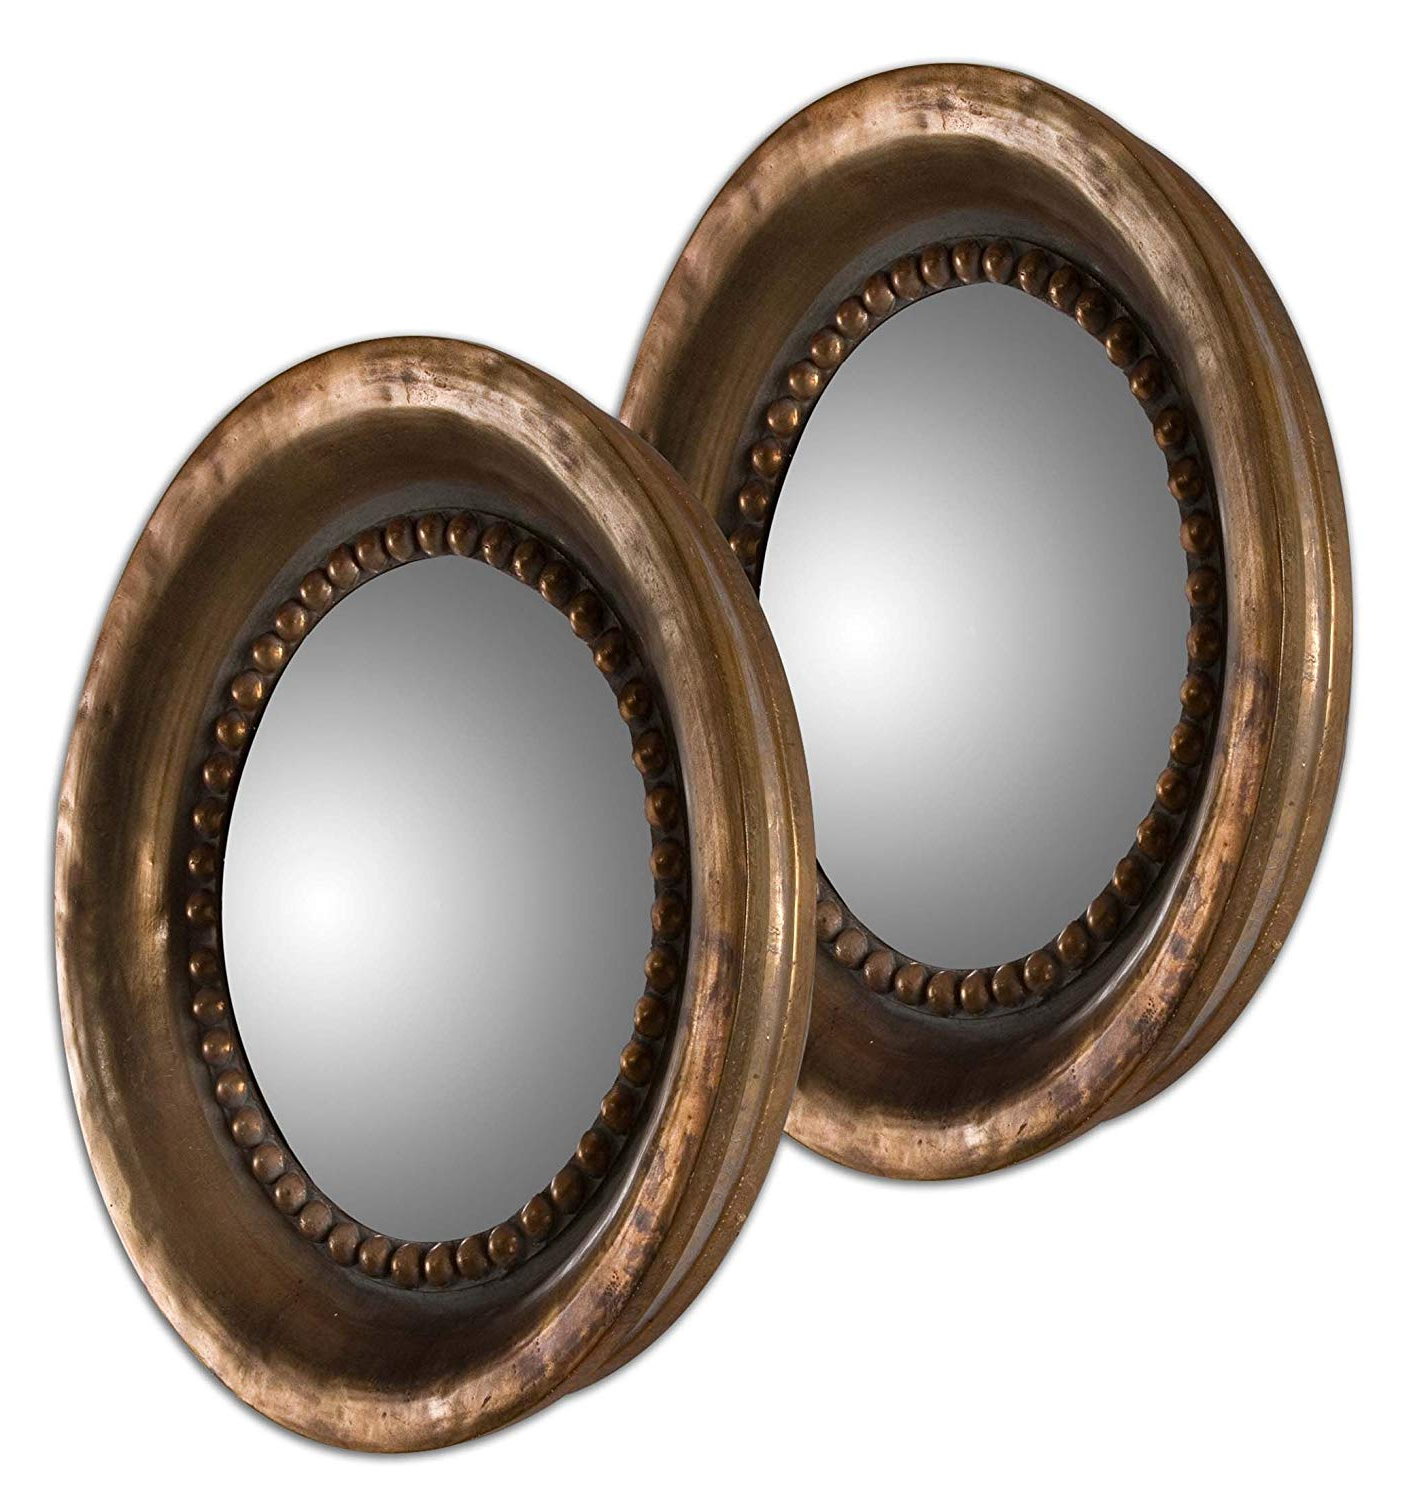 Amazon: Zinc Decor Oxidized Copper Round Convex Wall With Regard To Newest Copper Wall Mirrors (View 14 of 20)